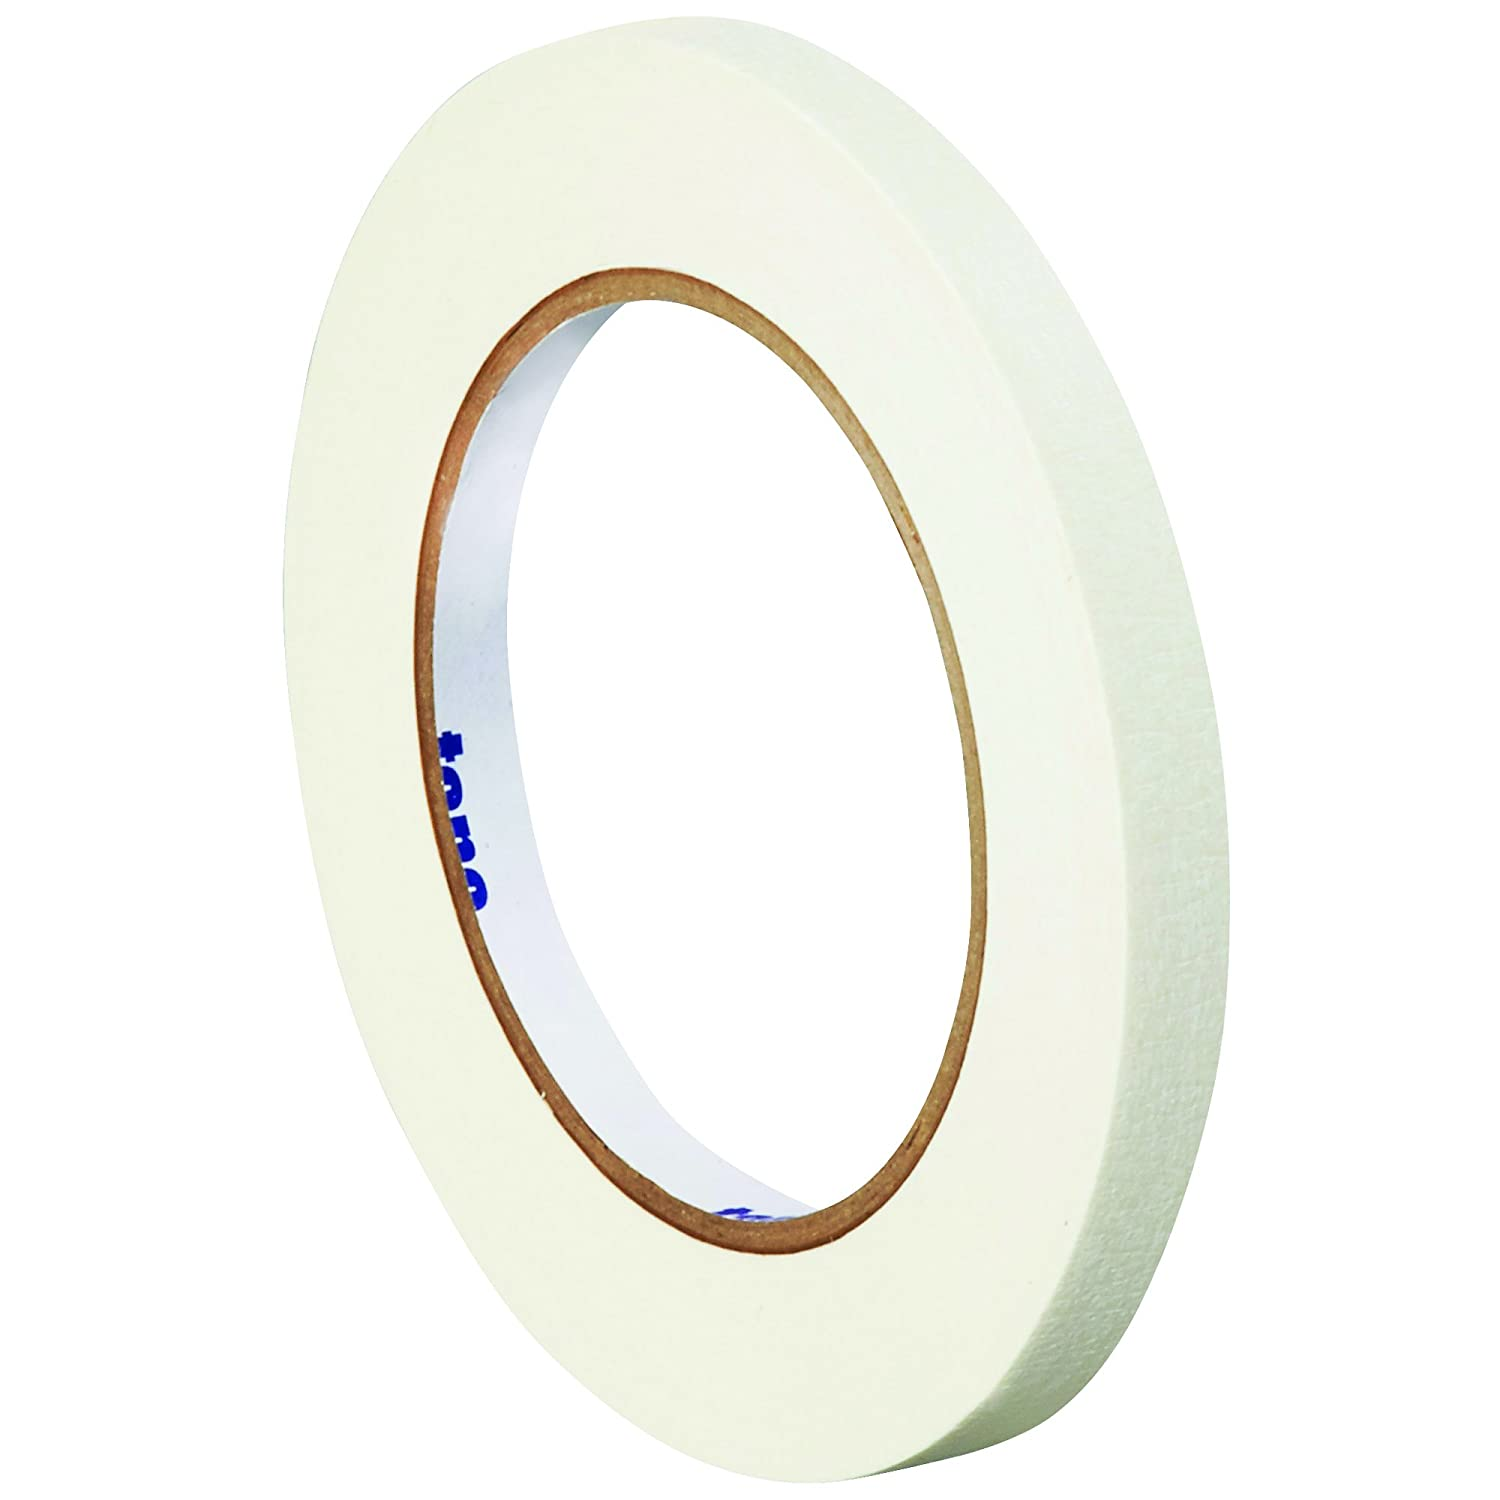 Colored White Masking Tape 12 Rolls Home and Office Tape Logic TLT93300312PKW Thick 4.9 Mil Multi Use for Narrow Fine Trim Detailing Labeling Packing Painting 1//2 Inch x 60 Yds Per Roll Identification Arts and Crafts